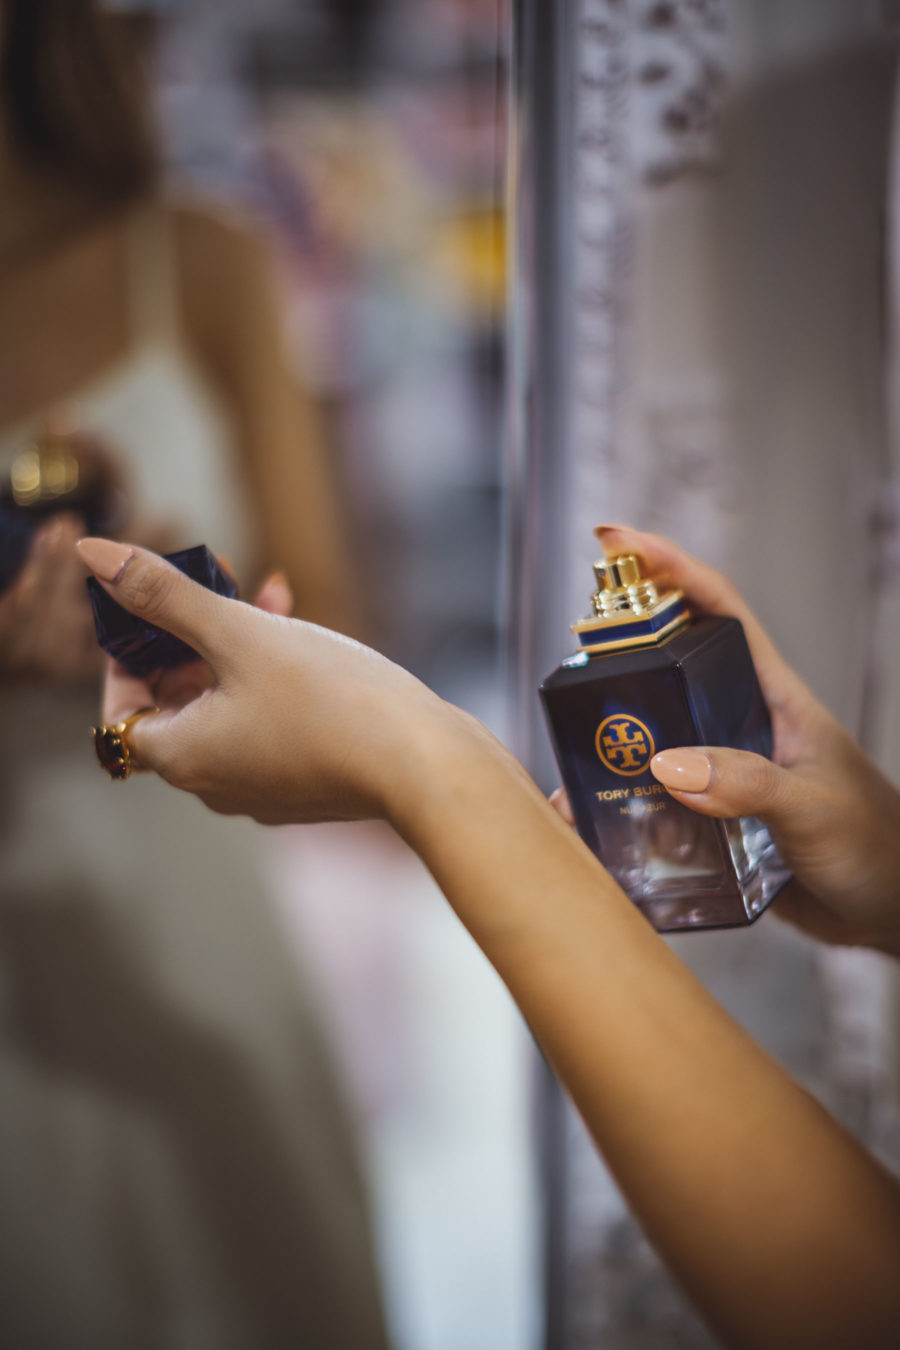 Fall Fragrance - Tory Burch Nuit Azur Perfume, night out photos // Notjessfashion.com